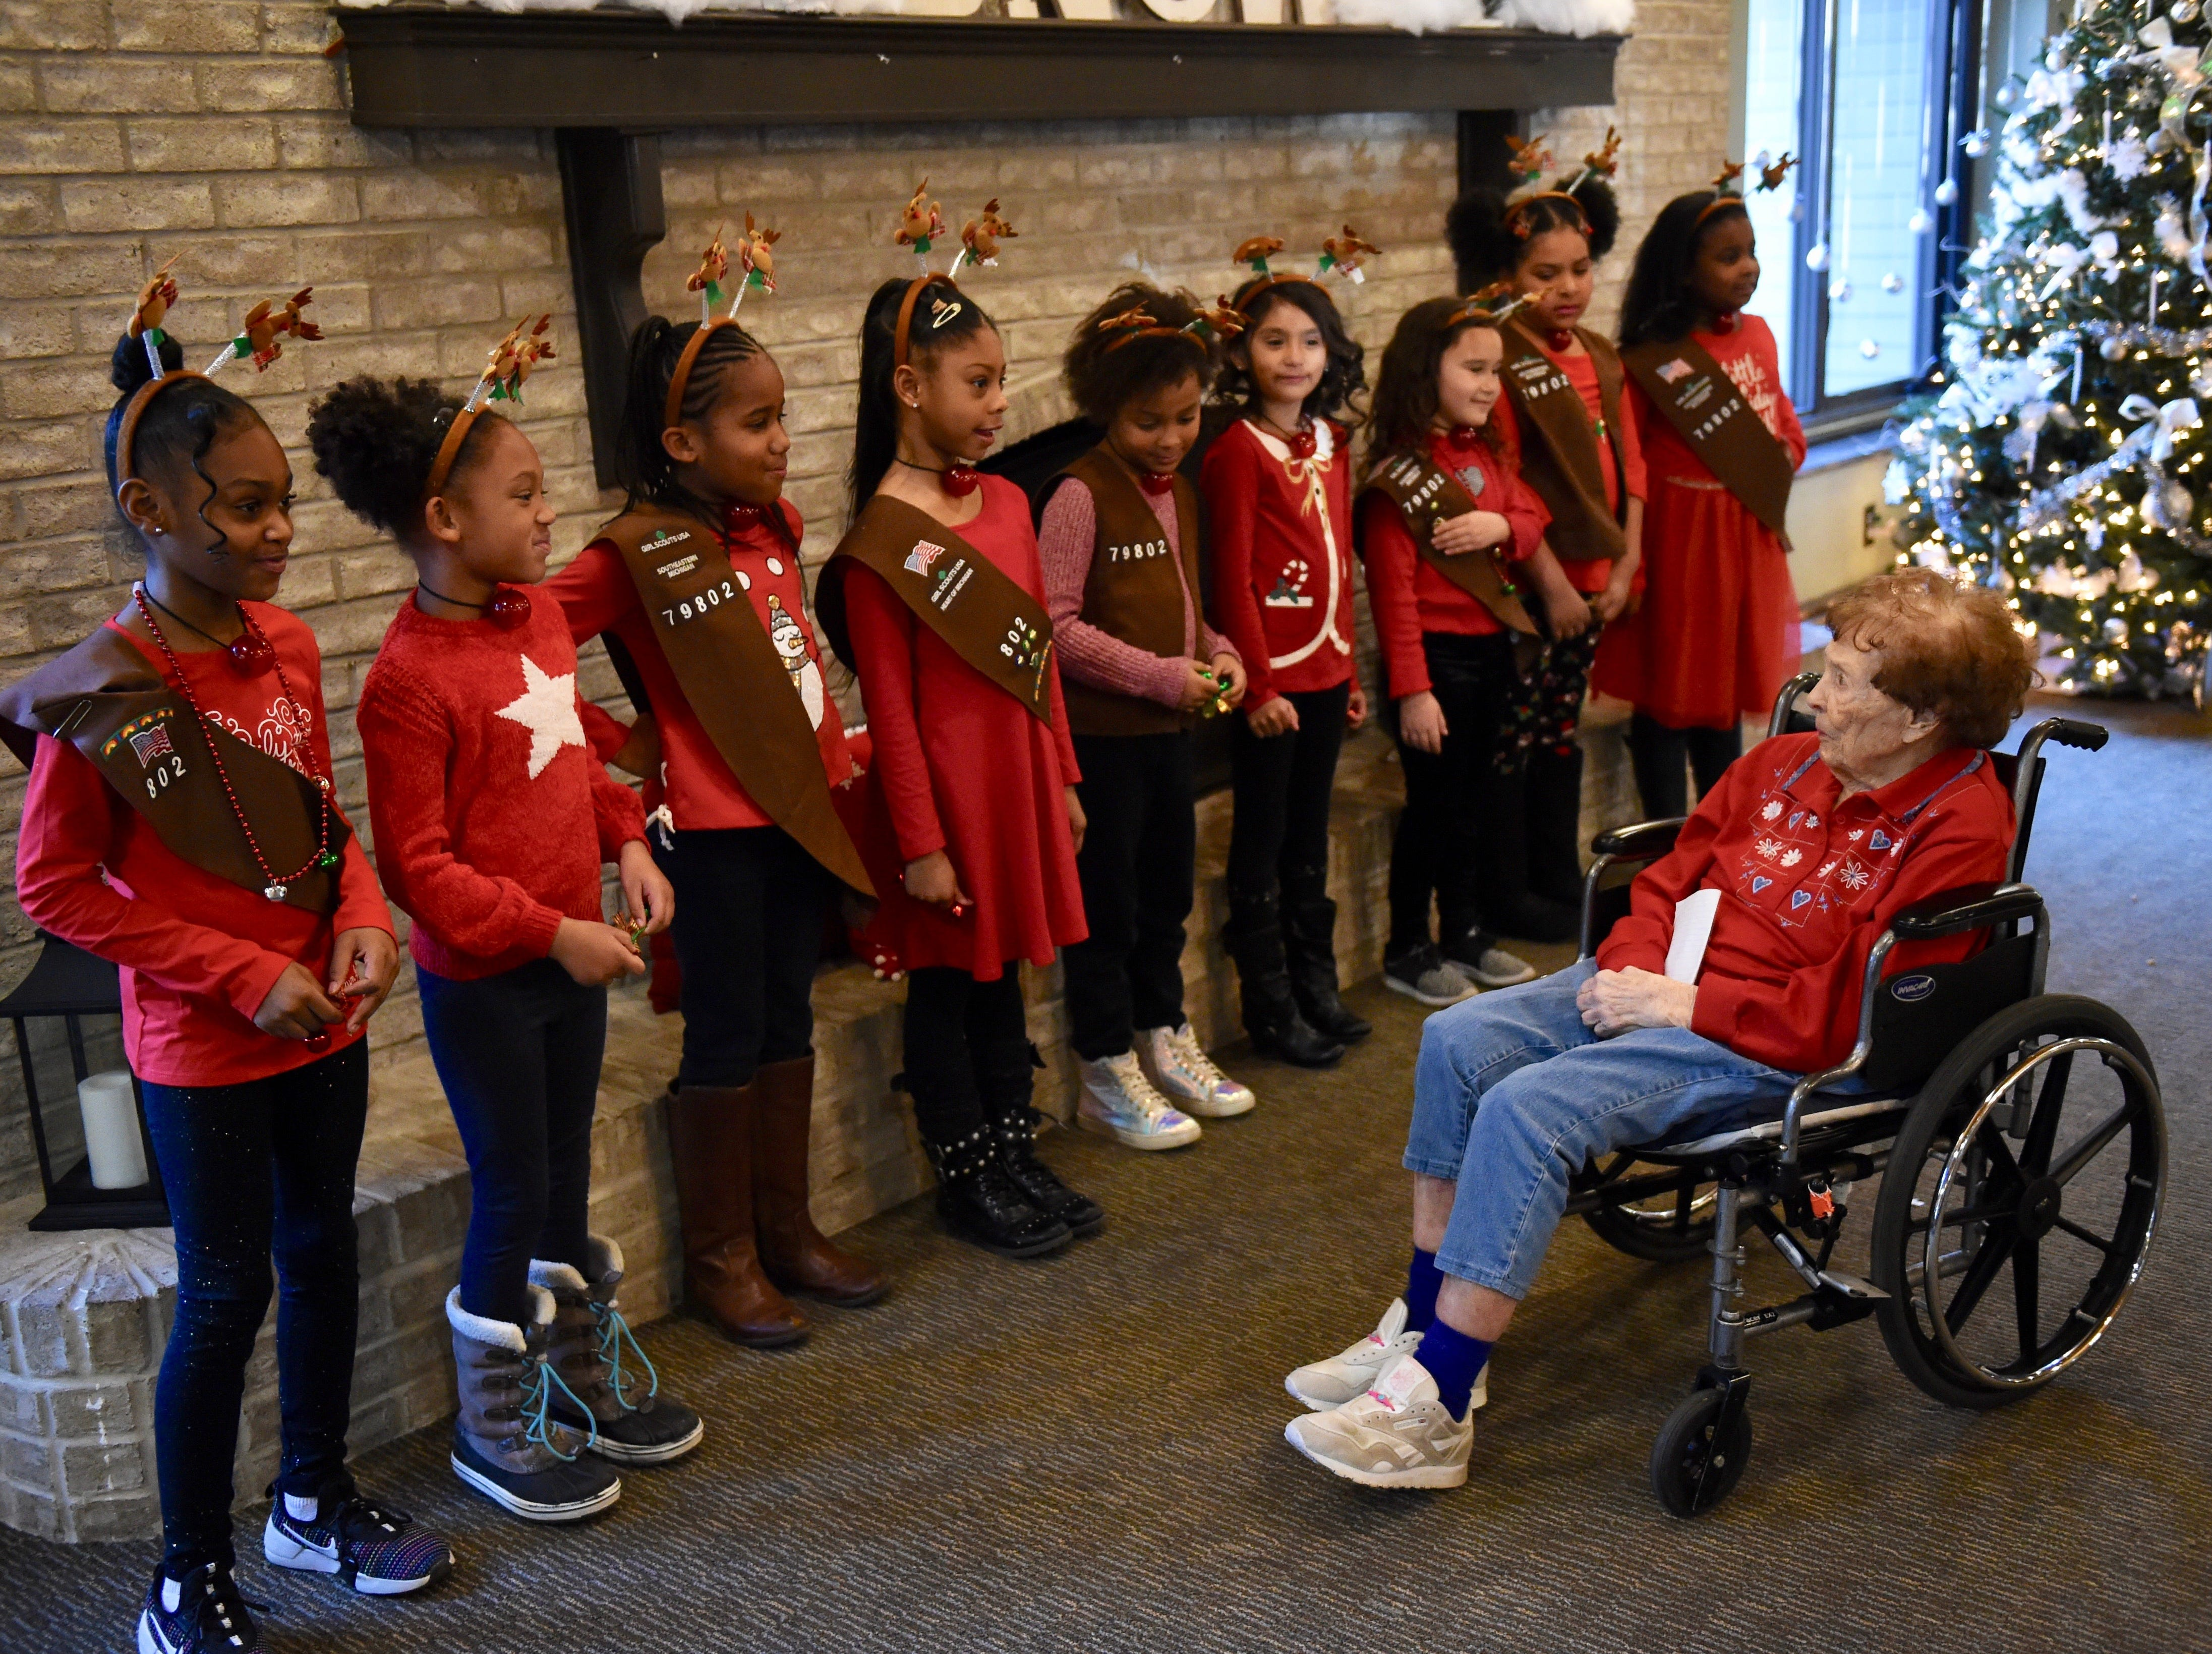 One-hundred-year-old Edith Foytek thanks the Brownie troop from Wood Creek for their beautiful songs.